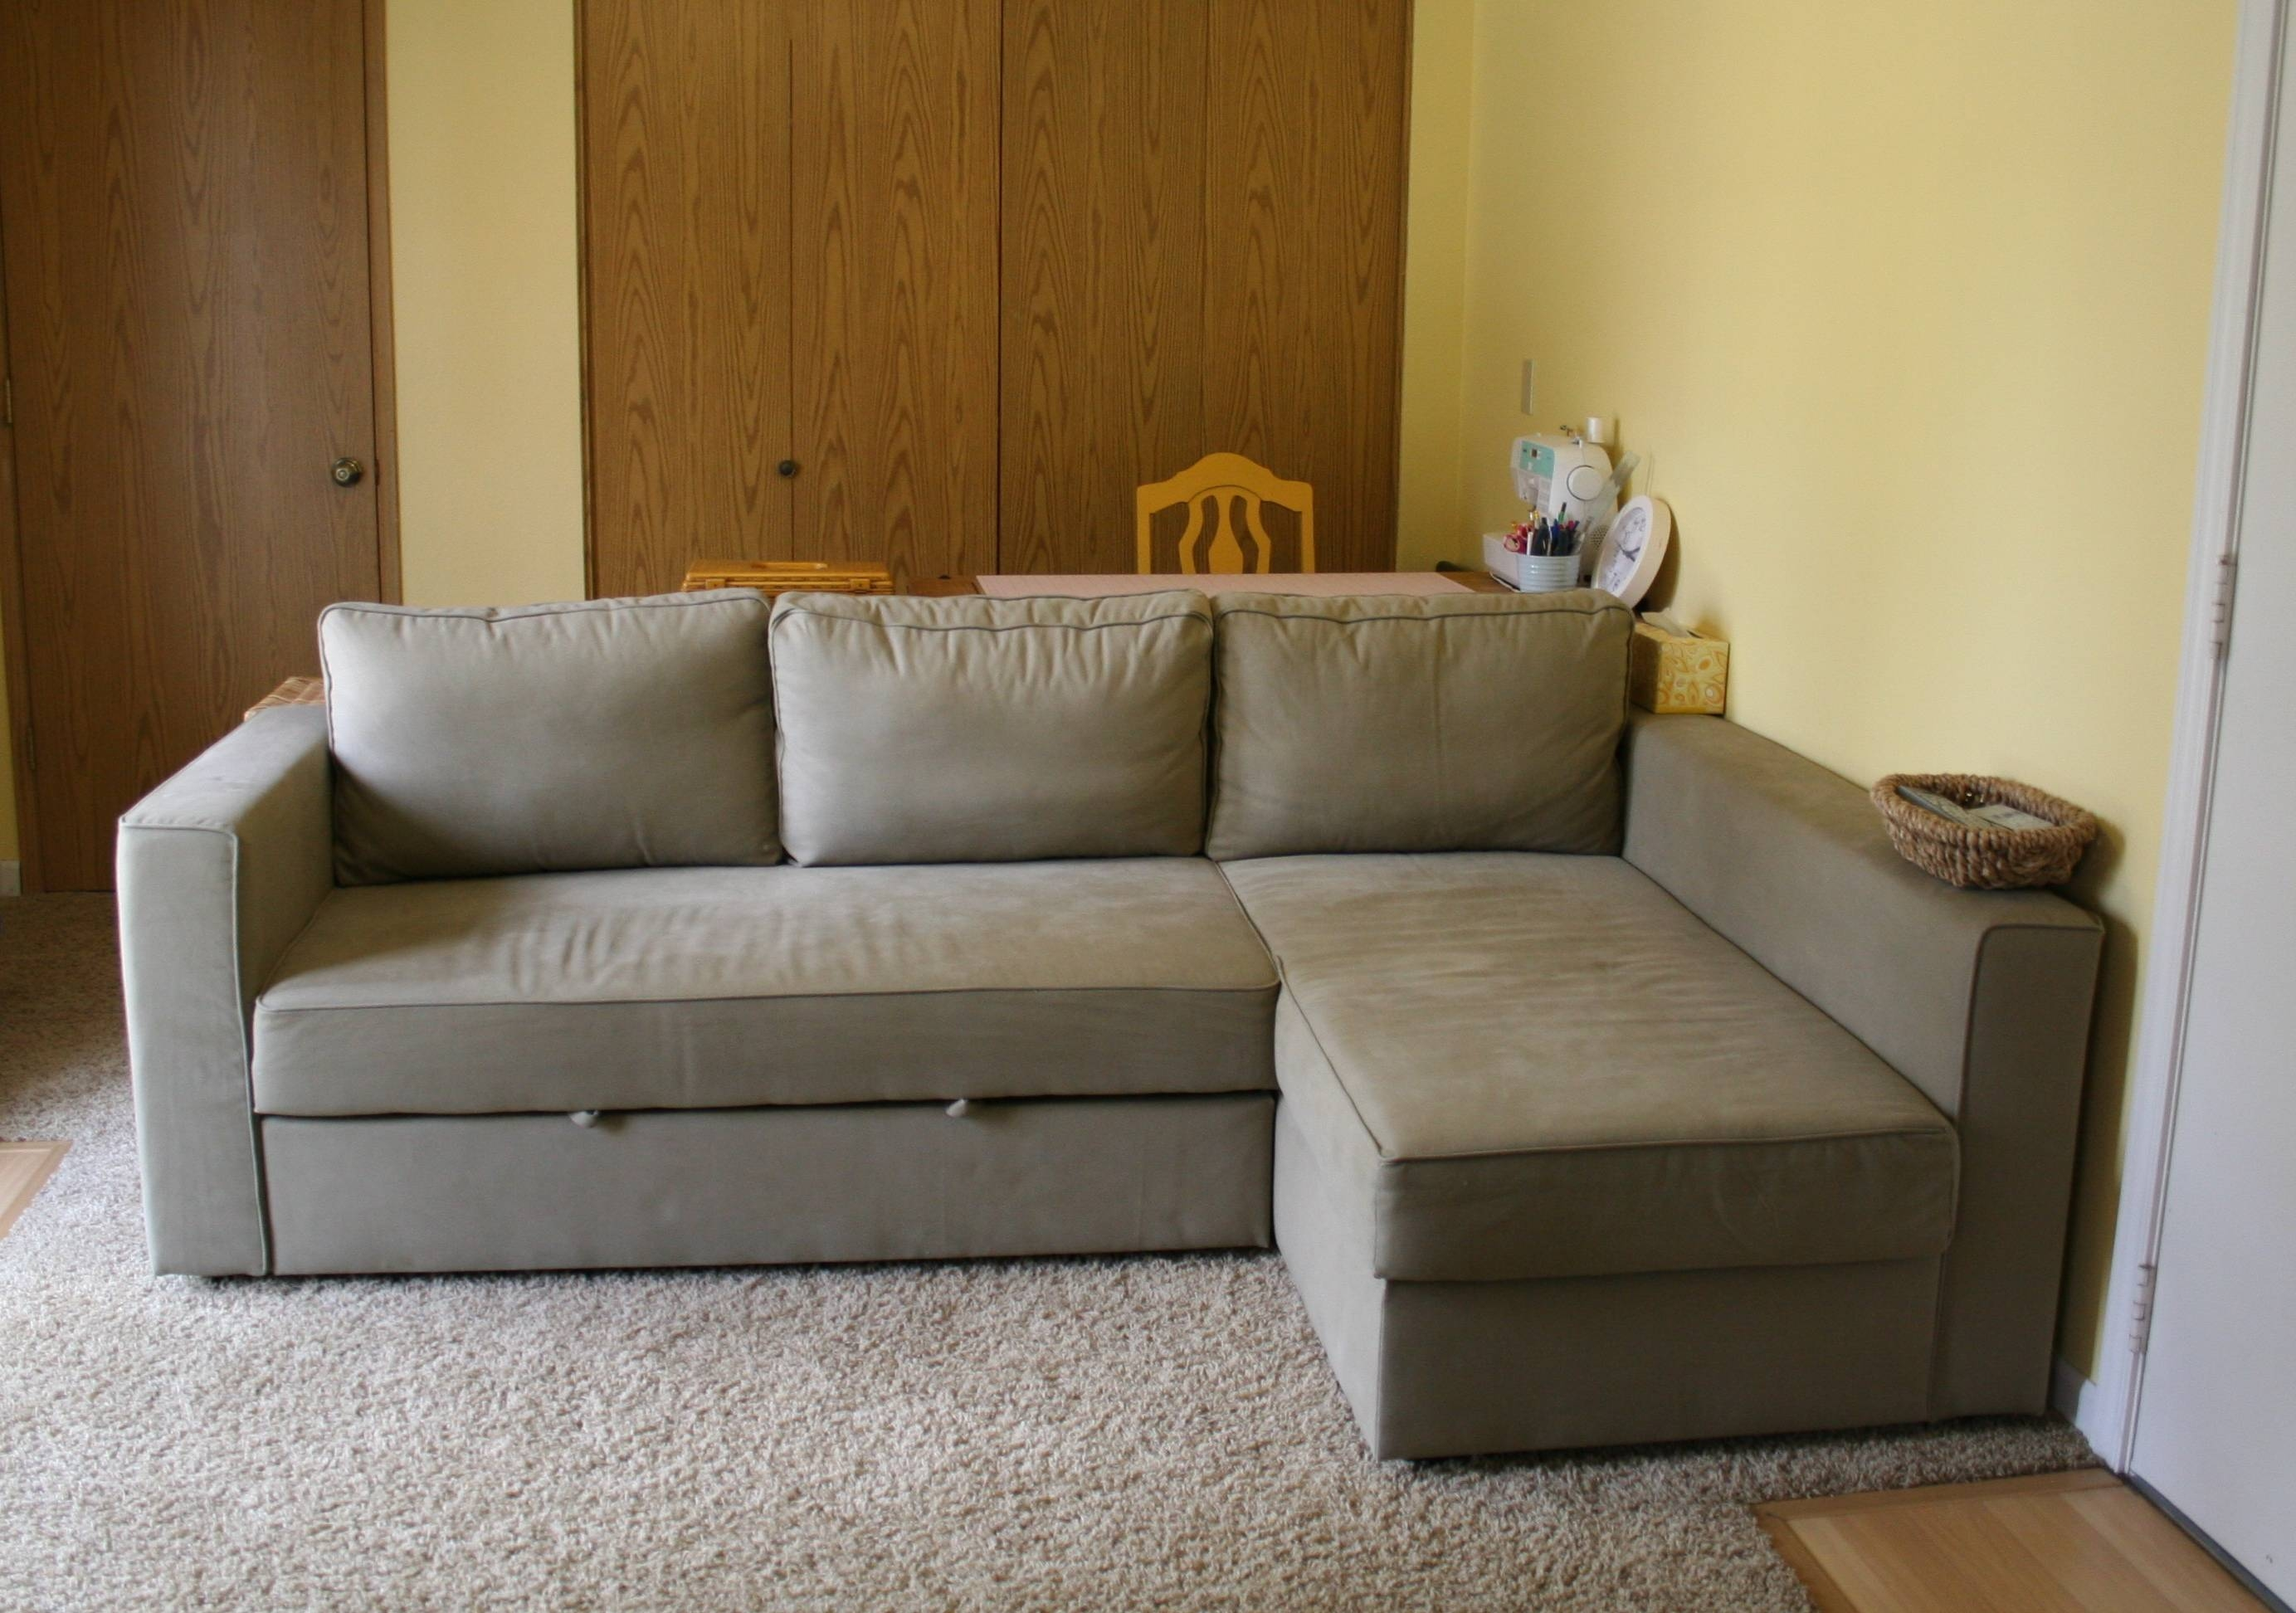 Furniture: Sectional Sleeper Sofa | Small Sectional Couch Inside Sleeper Sofa Sectional Ikea (View 11 of 25)